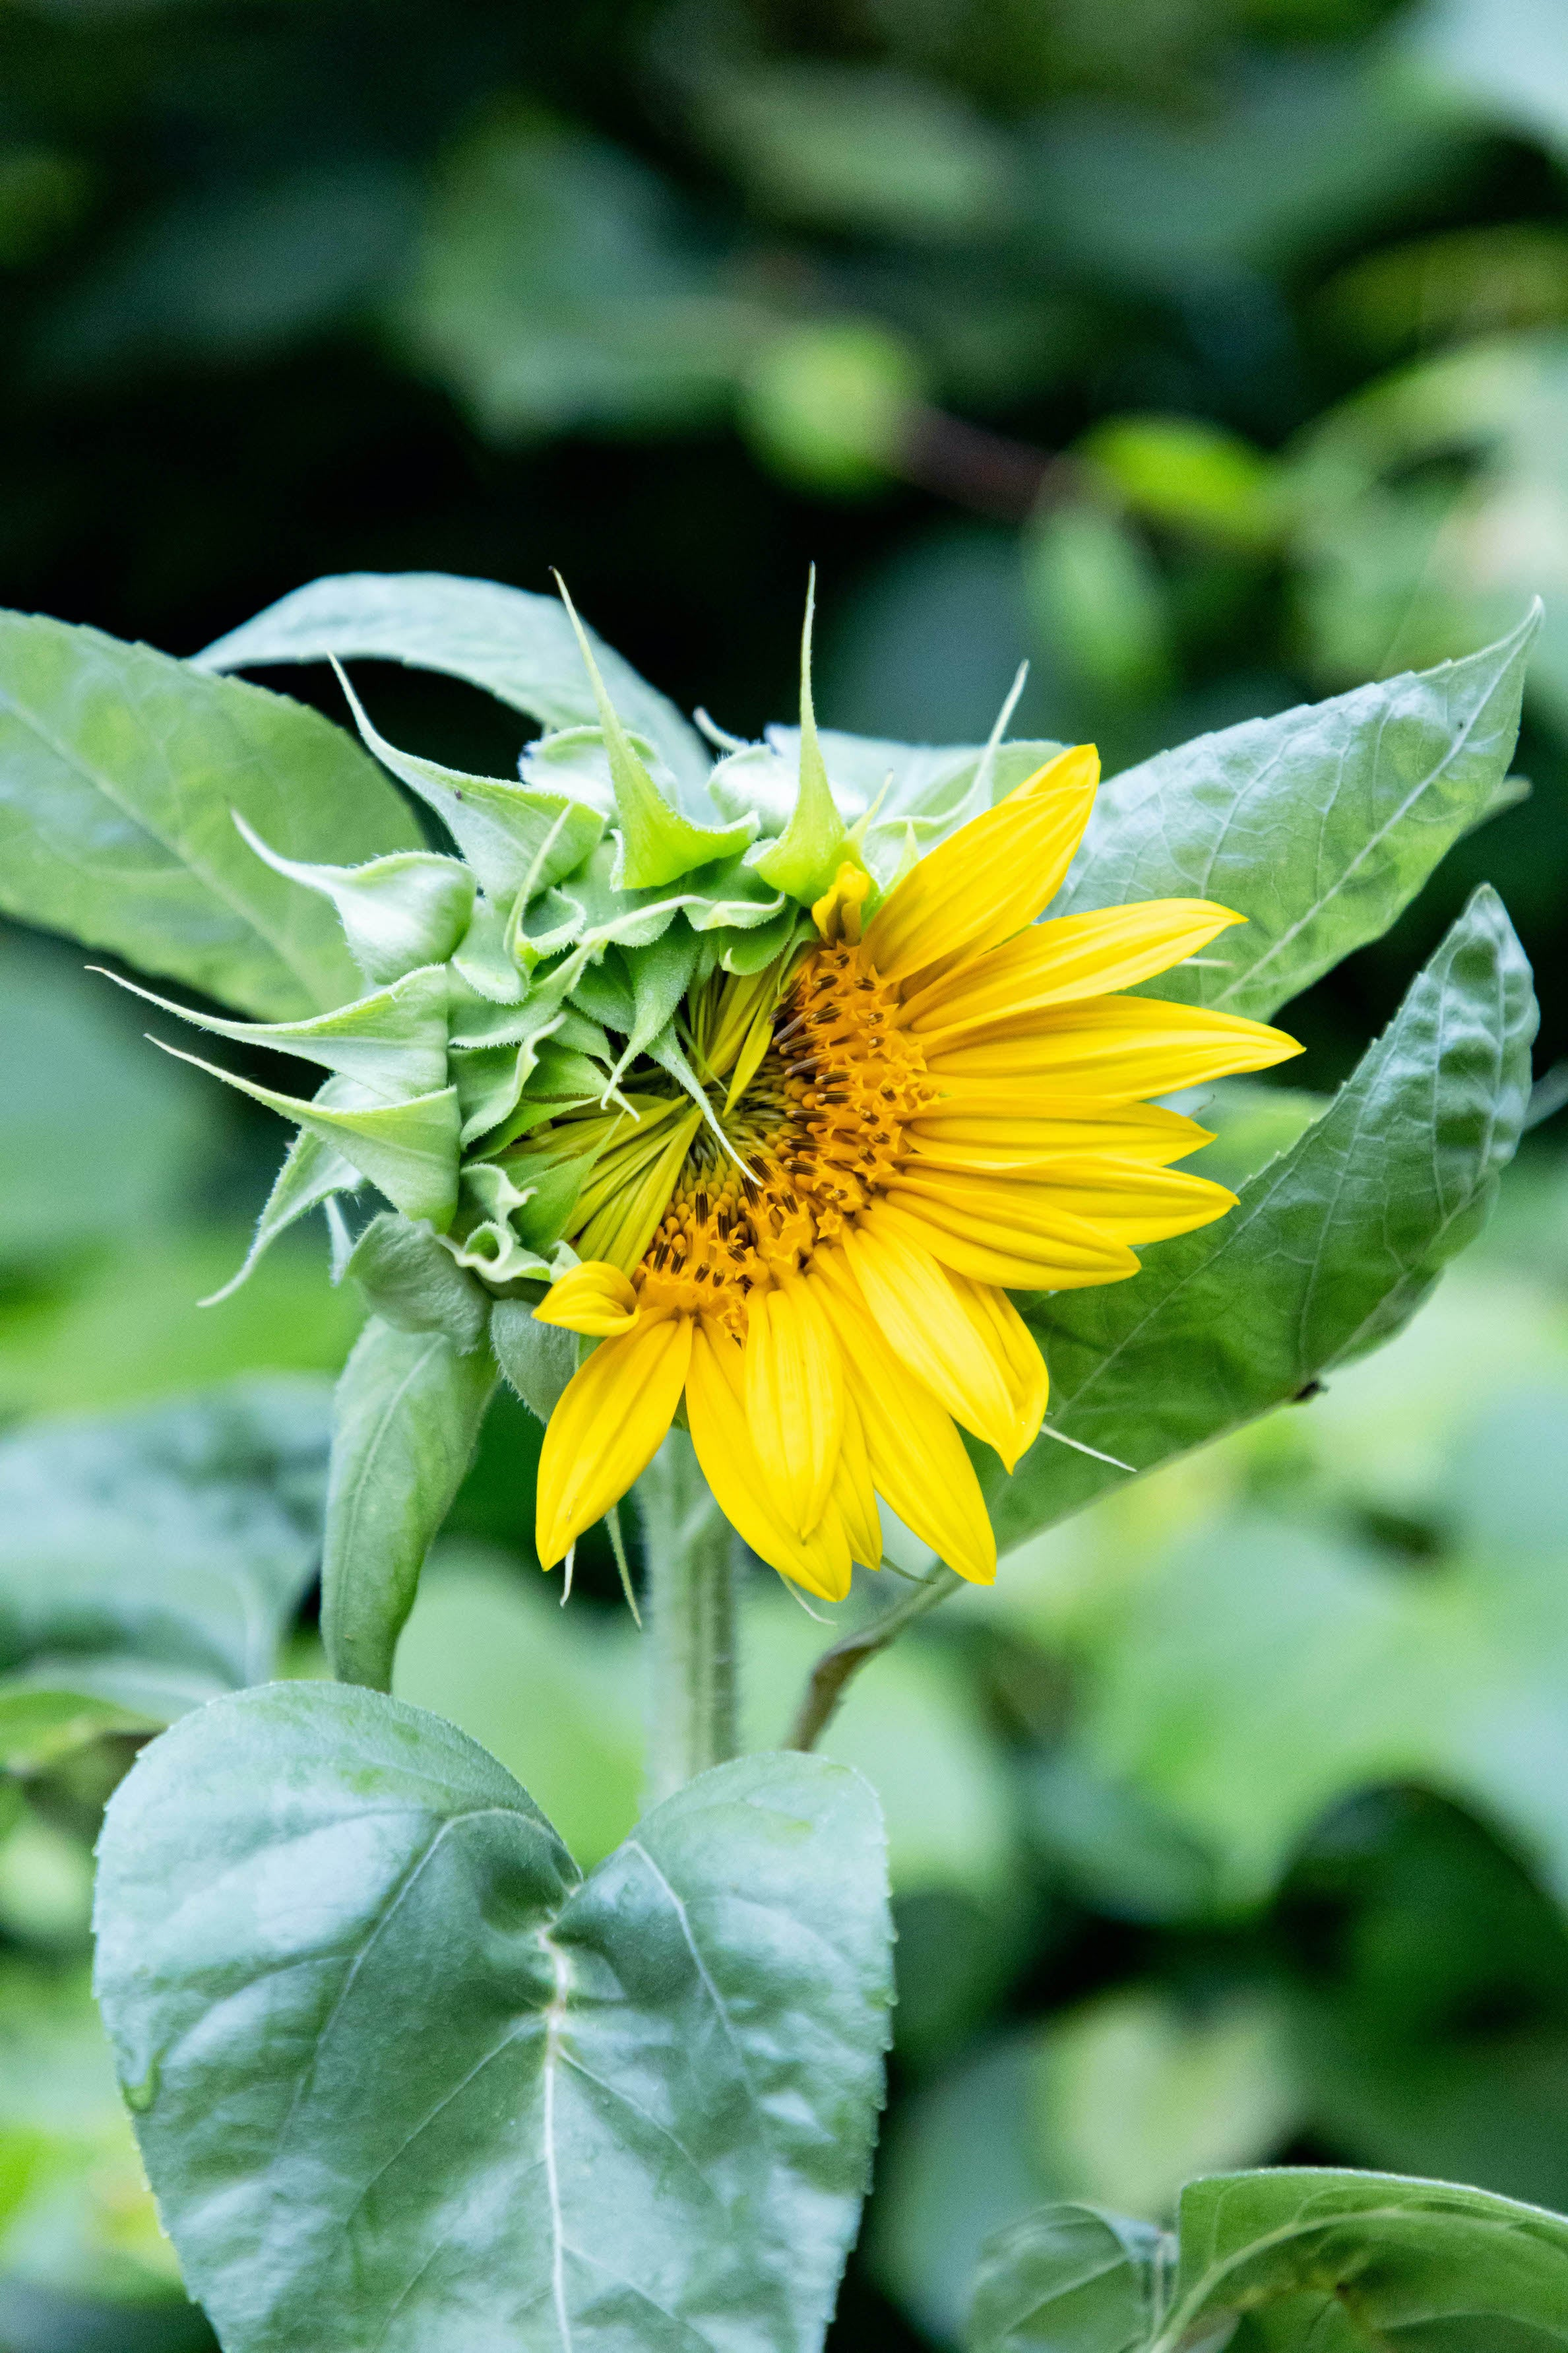 A green and yellow flower is in the process of unfurling